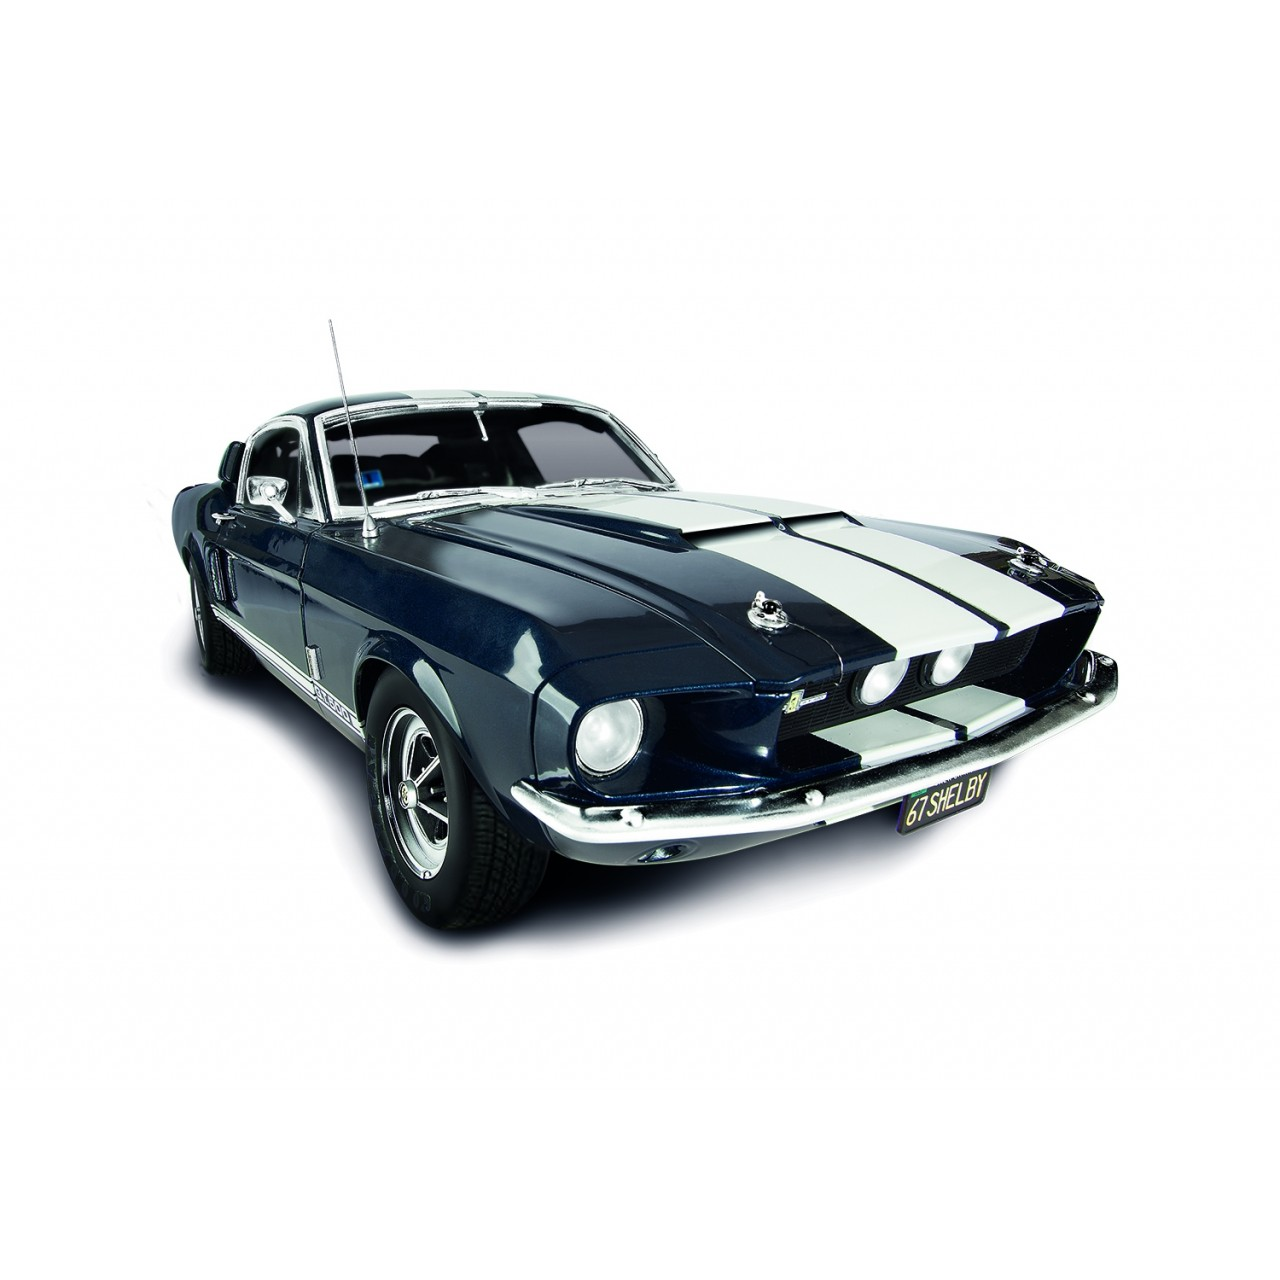 1//8 DEAGOSTINI BUILD YOUR OWN FORD MUSTANG 1967 SHELBY GT-500 ISSUE 15 INC PART